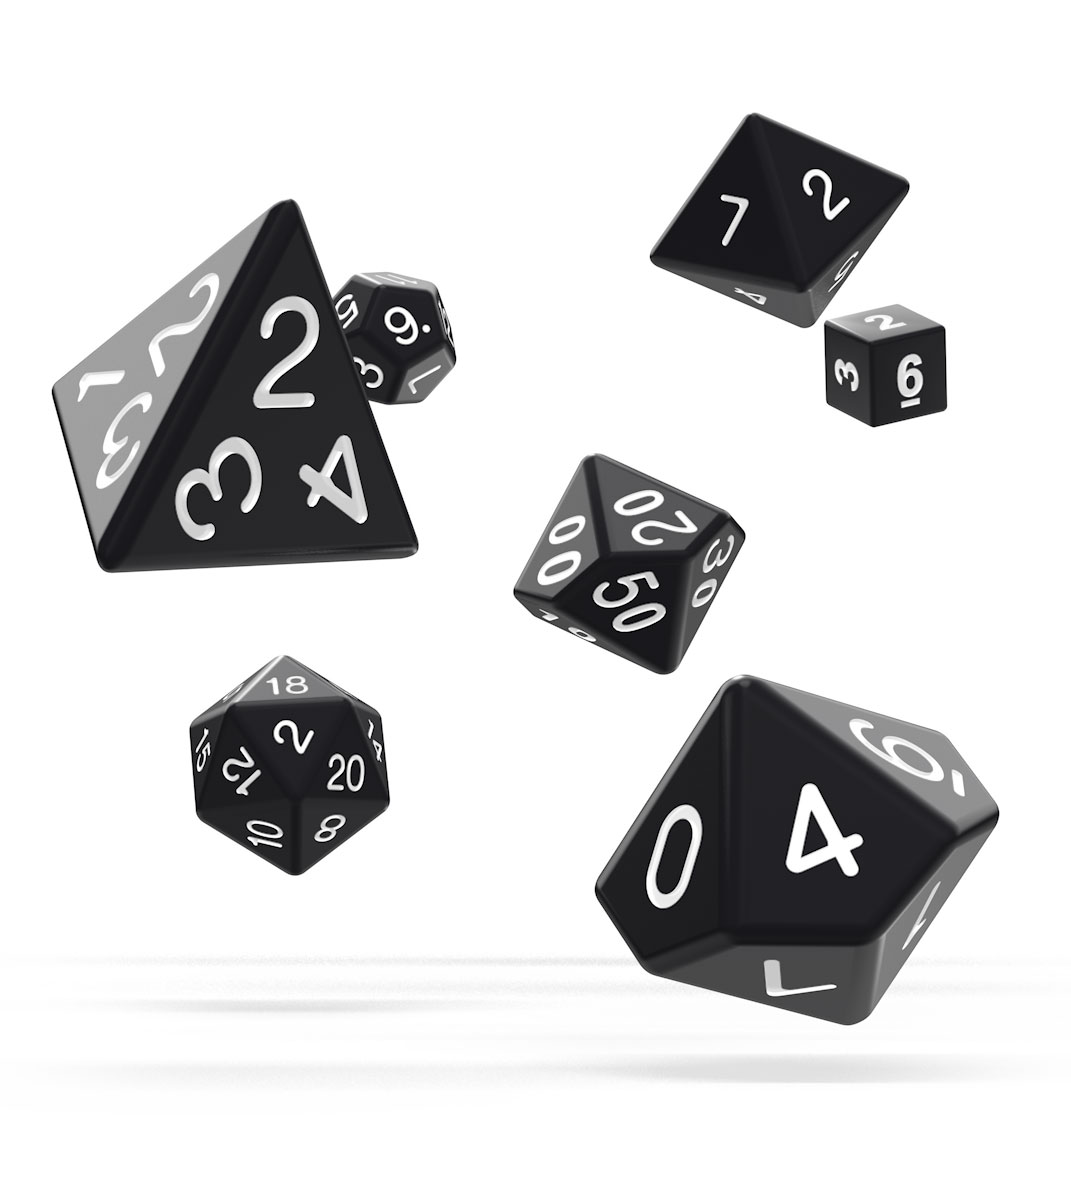 Kocka Set (7) - Oakie Doakie Dice RPG Set Solid - Black